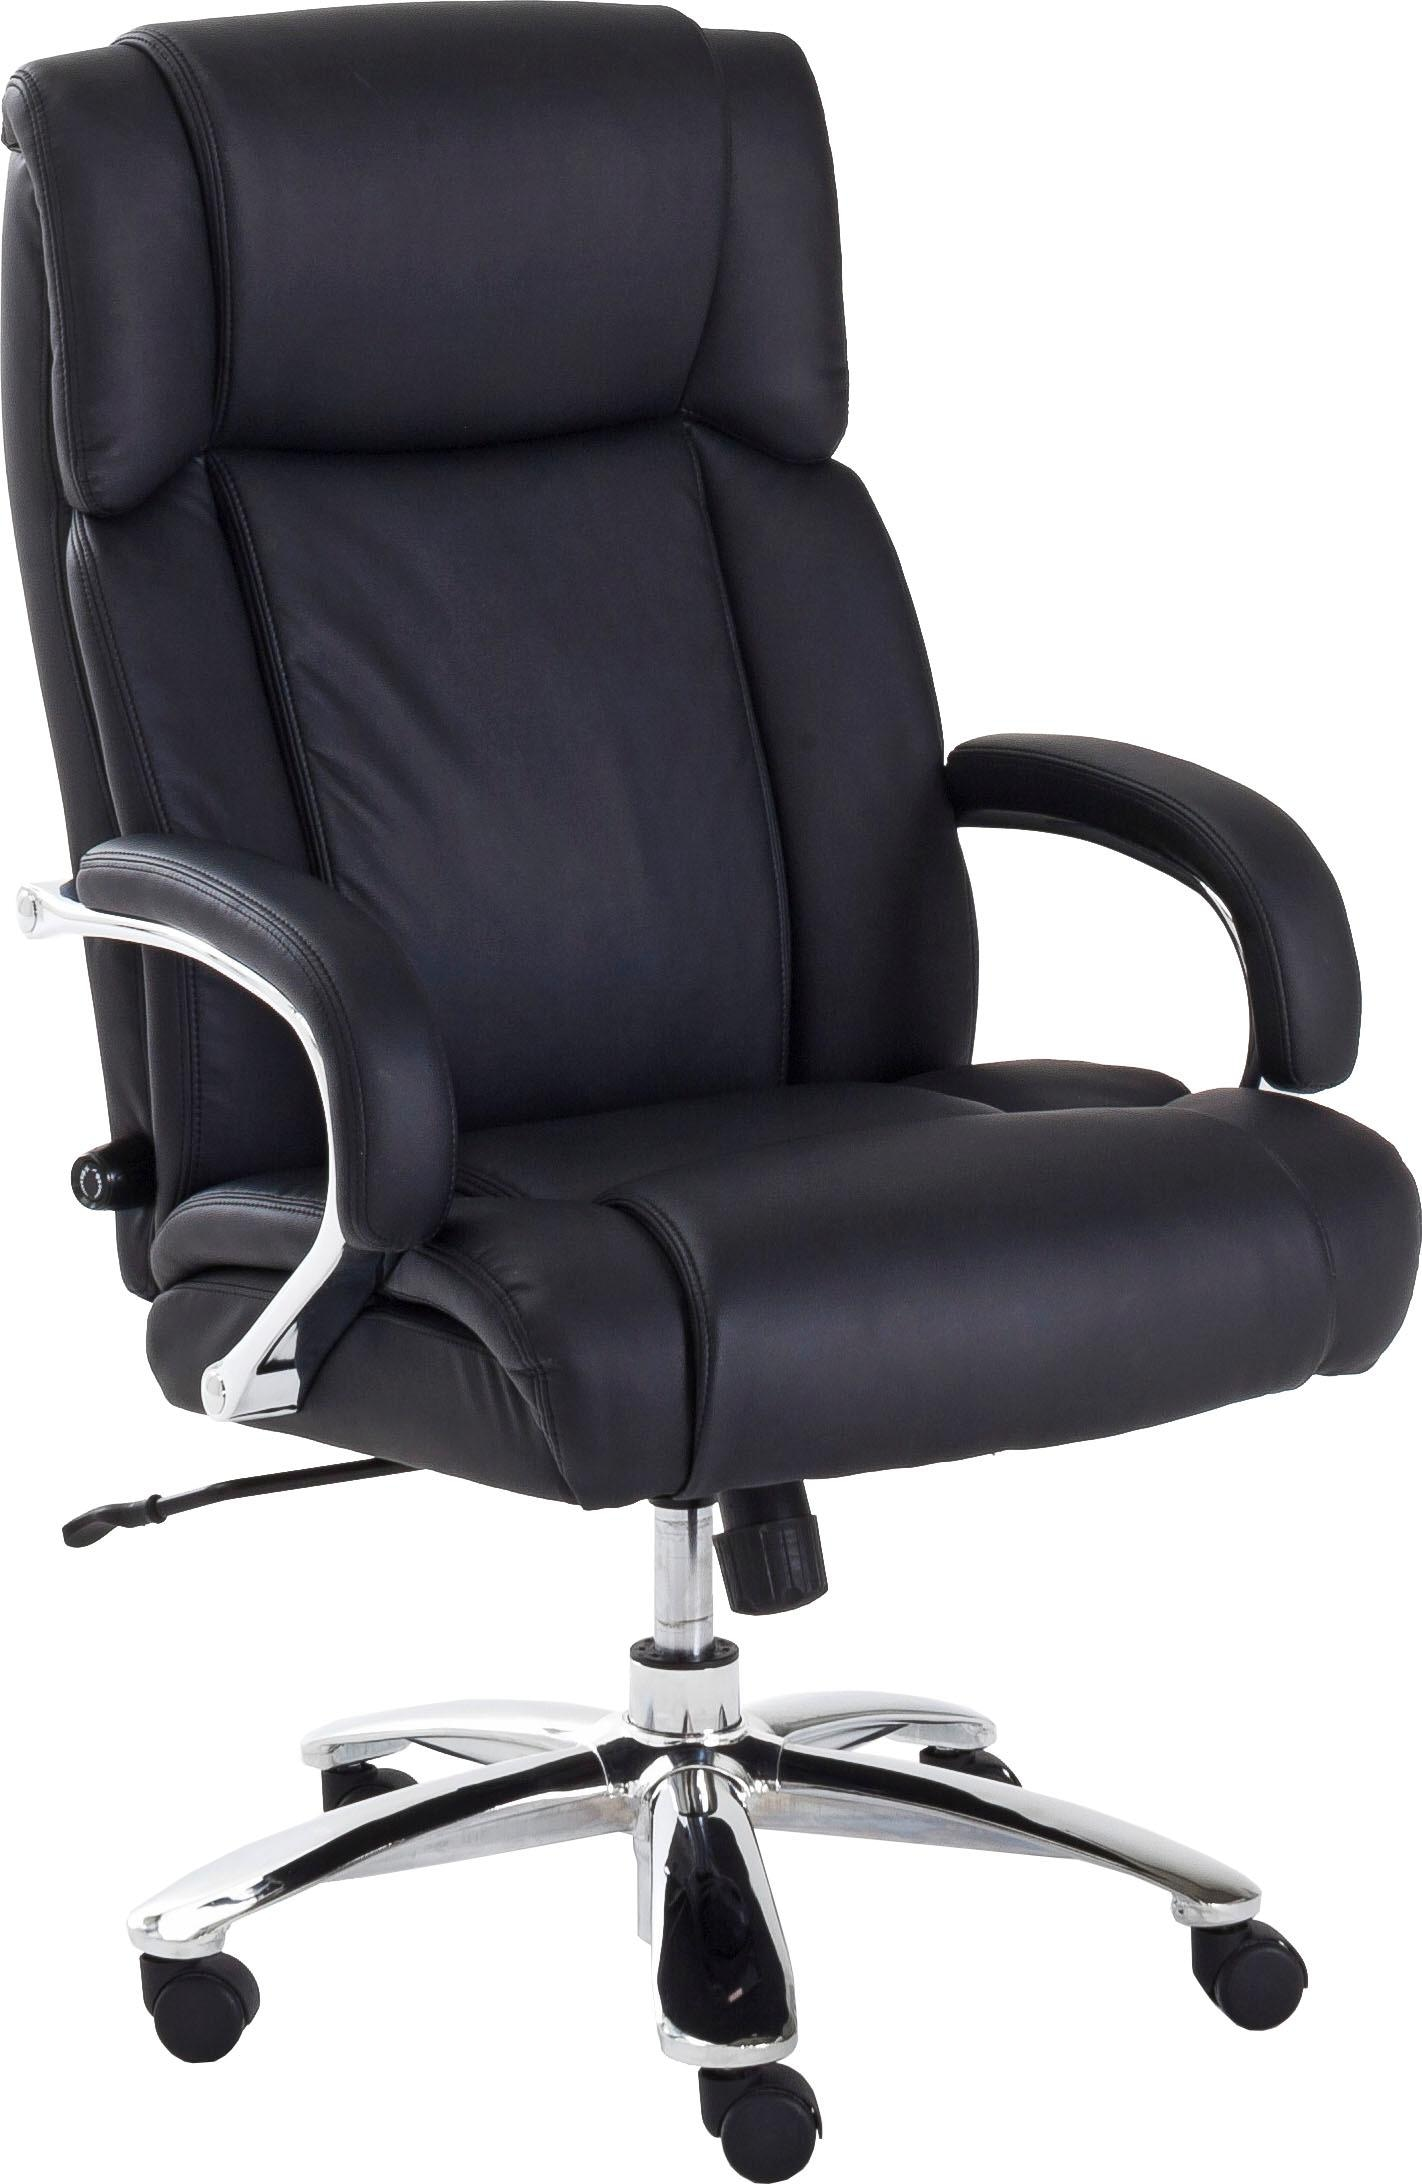 Chefsessel REAL COMFORT 5